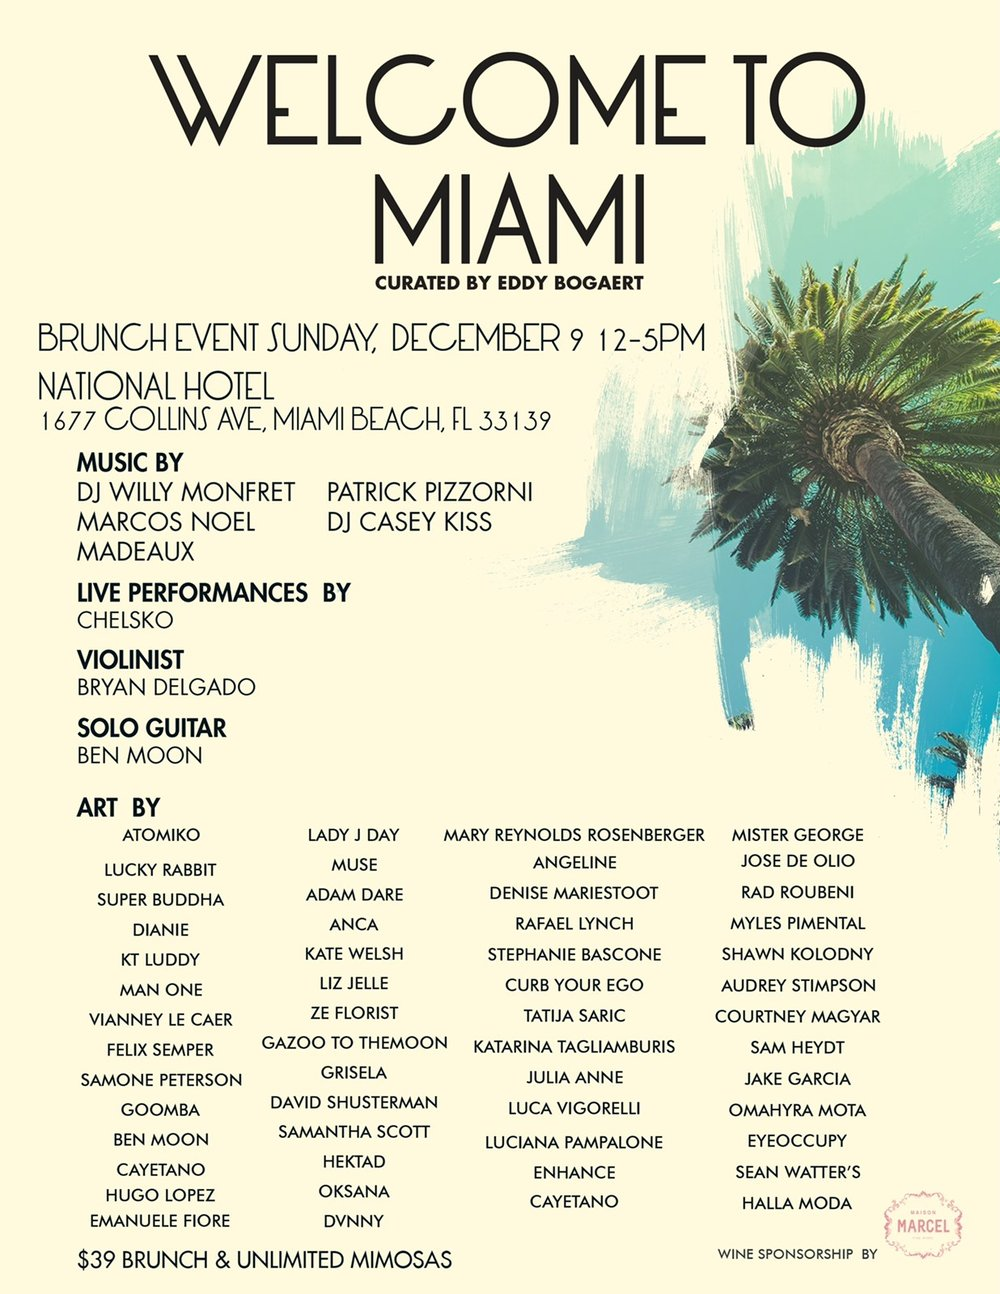 Ill Be In Miami During Art Basel This Year For A Fun Group Exhibition At The National Hotel In Miami Beach On Sunday Dec 9 From Noon 5pm